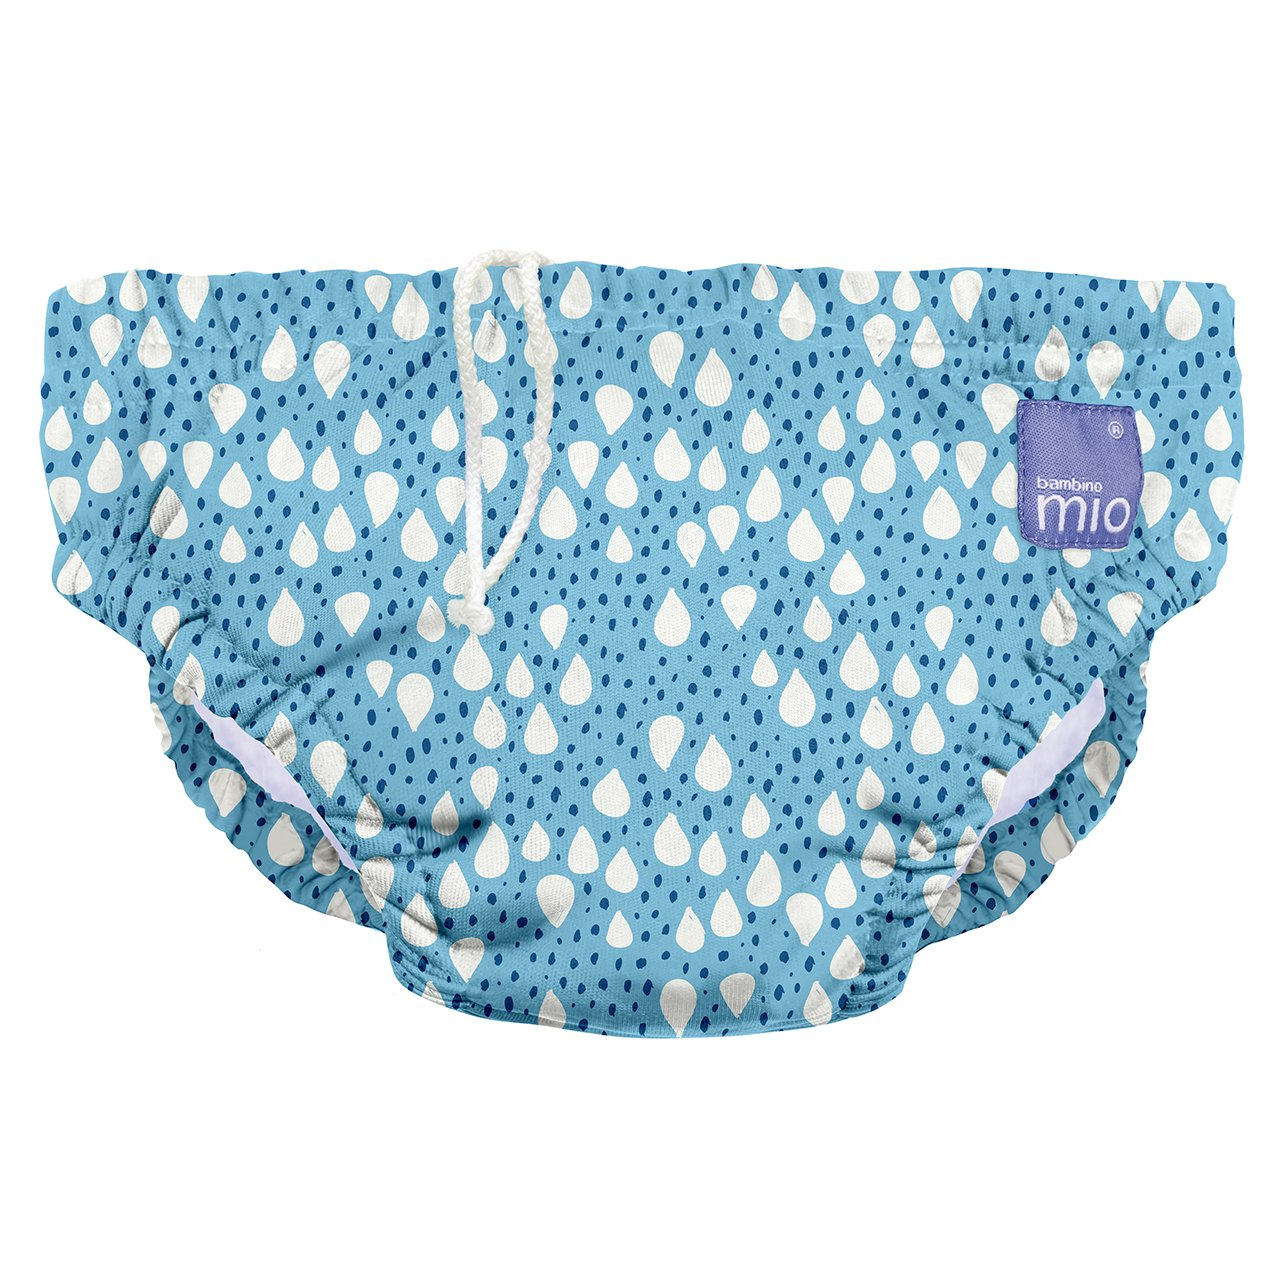 Bambino Mio, Reusable Swim Nappy, Blue Tail, Small (0-6 months) Bambino Mio UK SWPS BLU